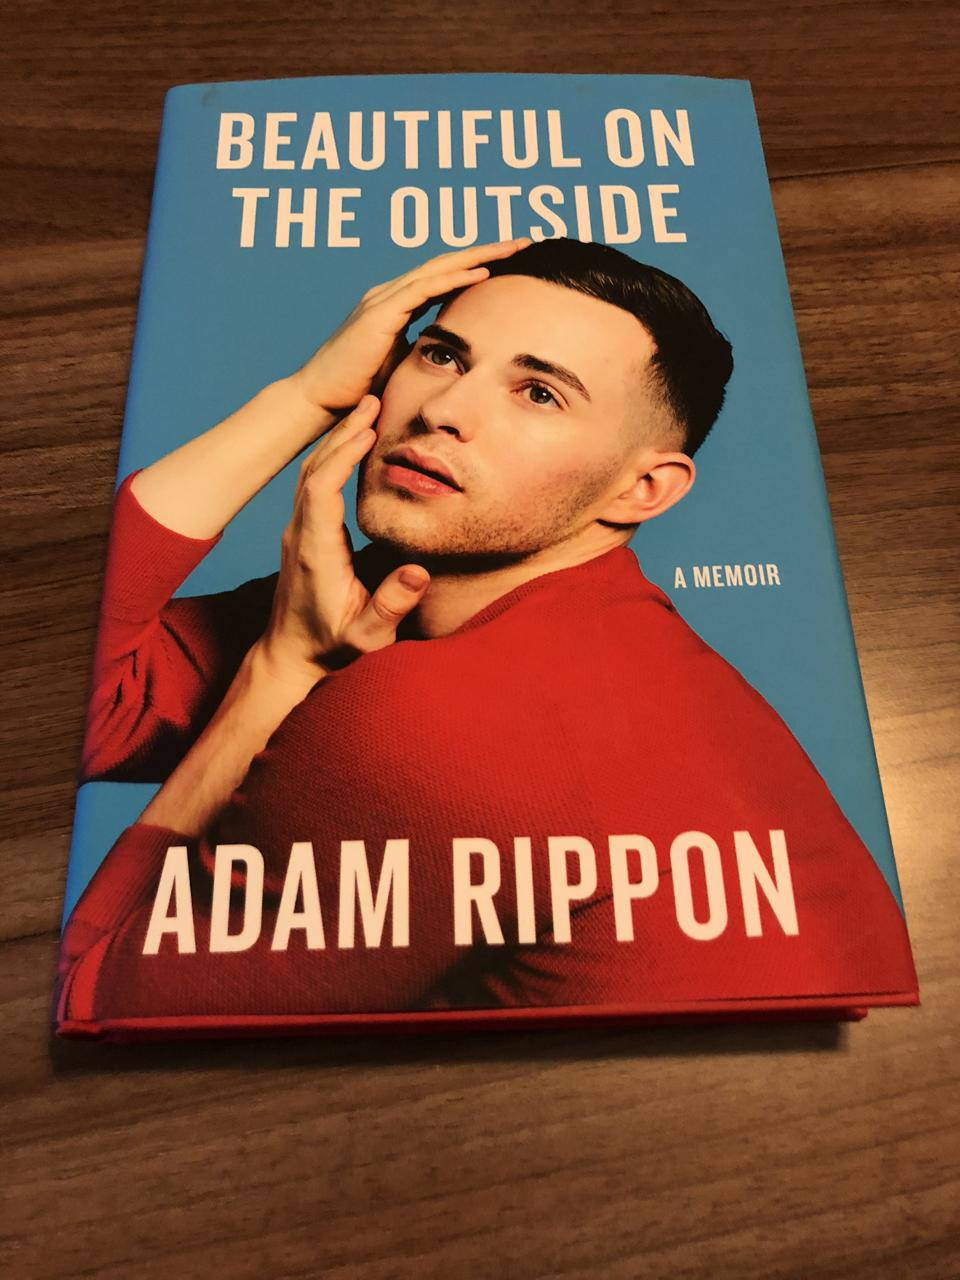 Adam Rippon may be beautiful on the outside, but he is also fabulous and frugal on the inside.